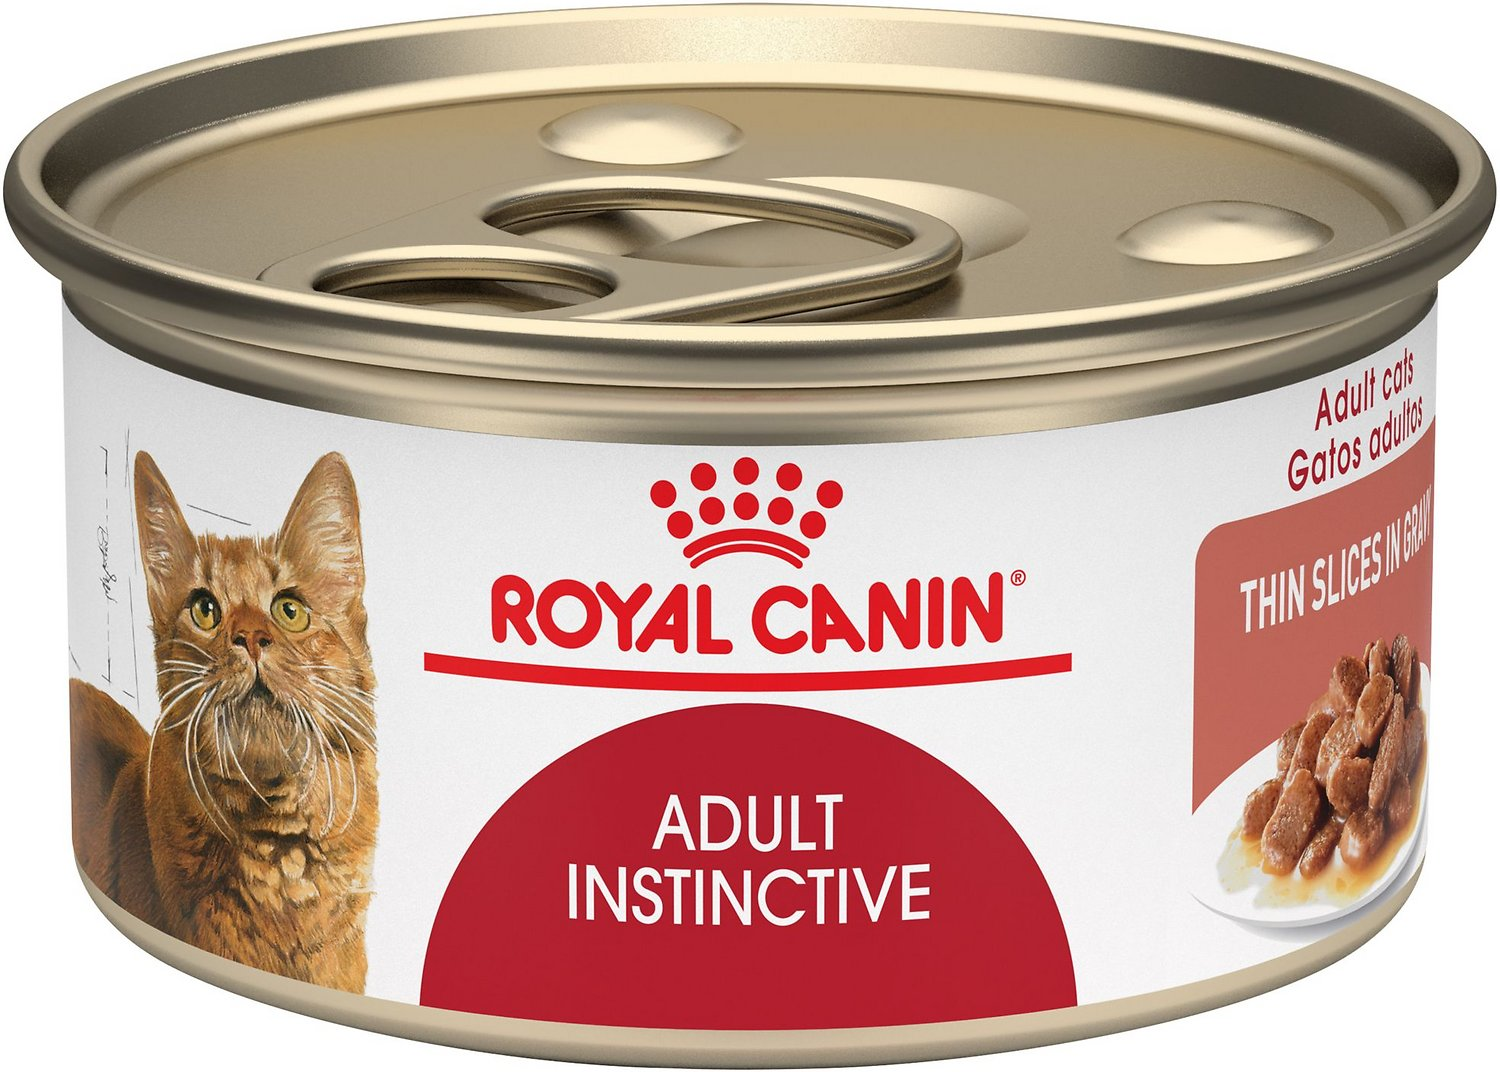 Royal Canin Feline Health Nutrition Adult Instinctive Thin Slices in Gravy Canned Cat Food, 3-oz